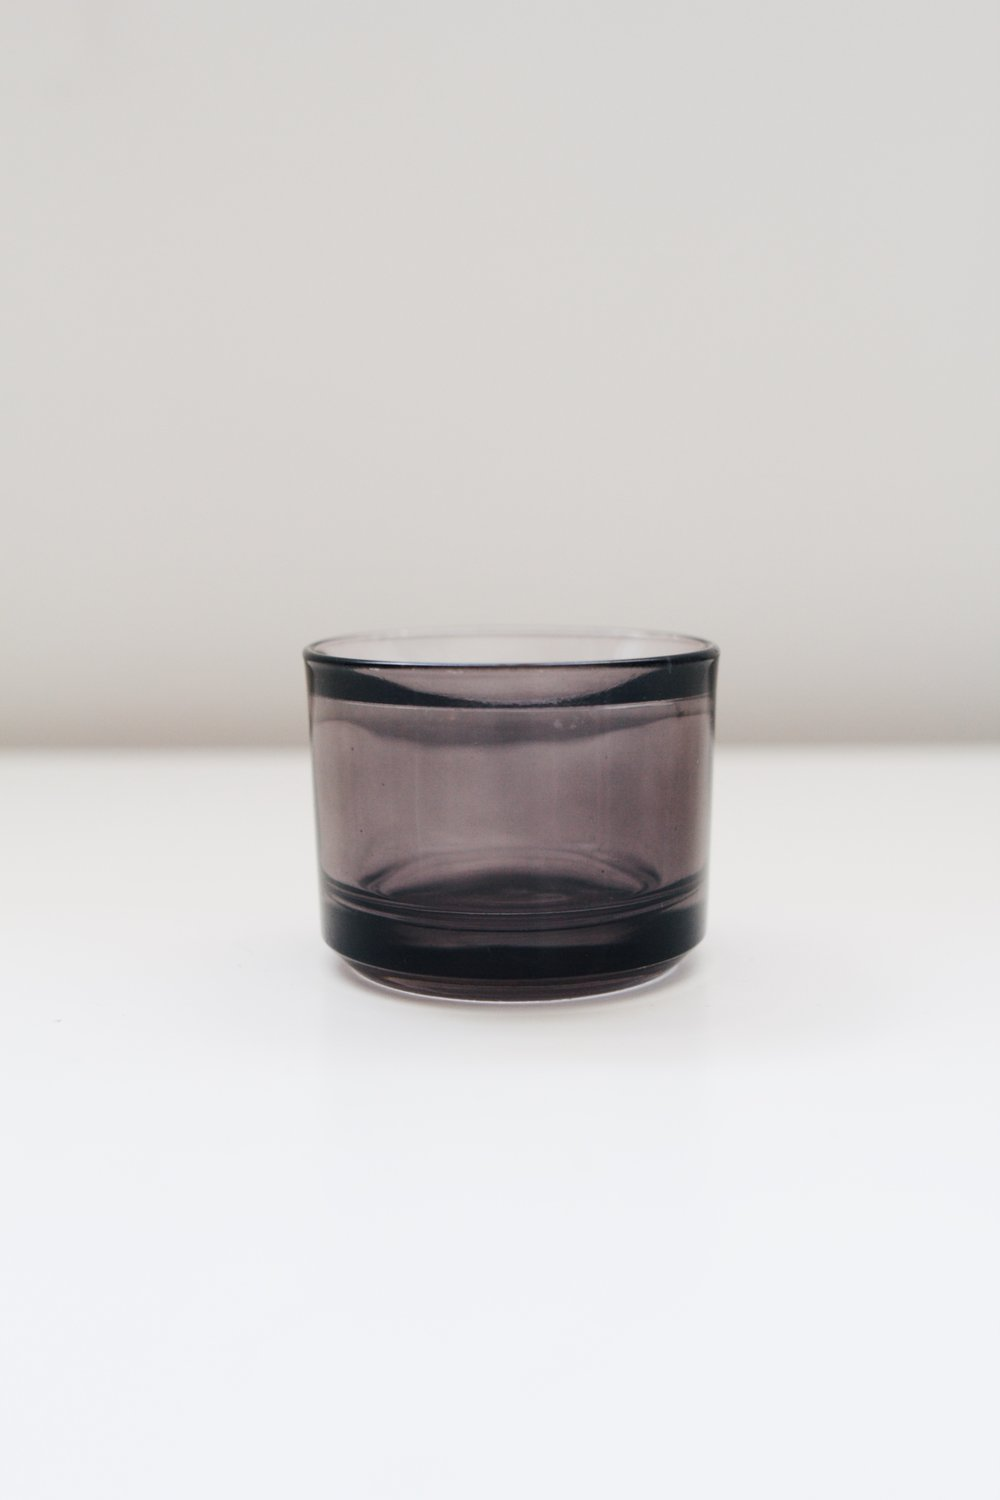 avideas-inventory-votives-smokeglass-SML1.JPG